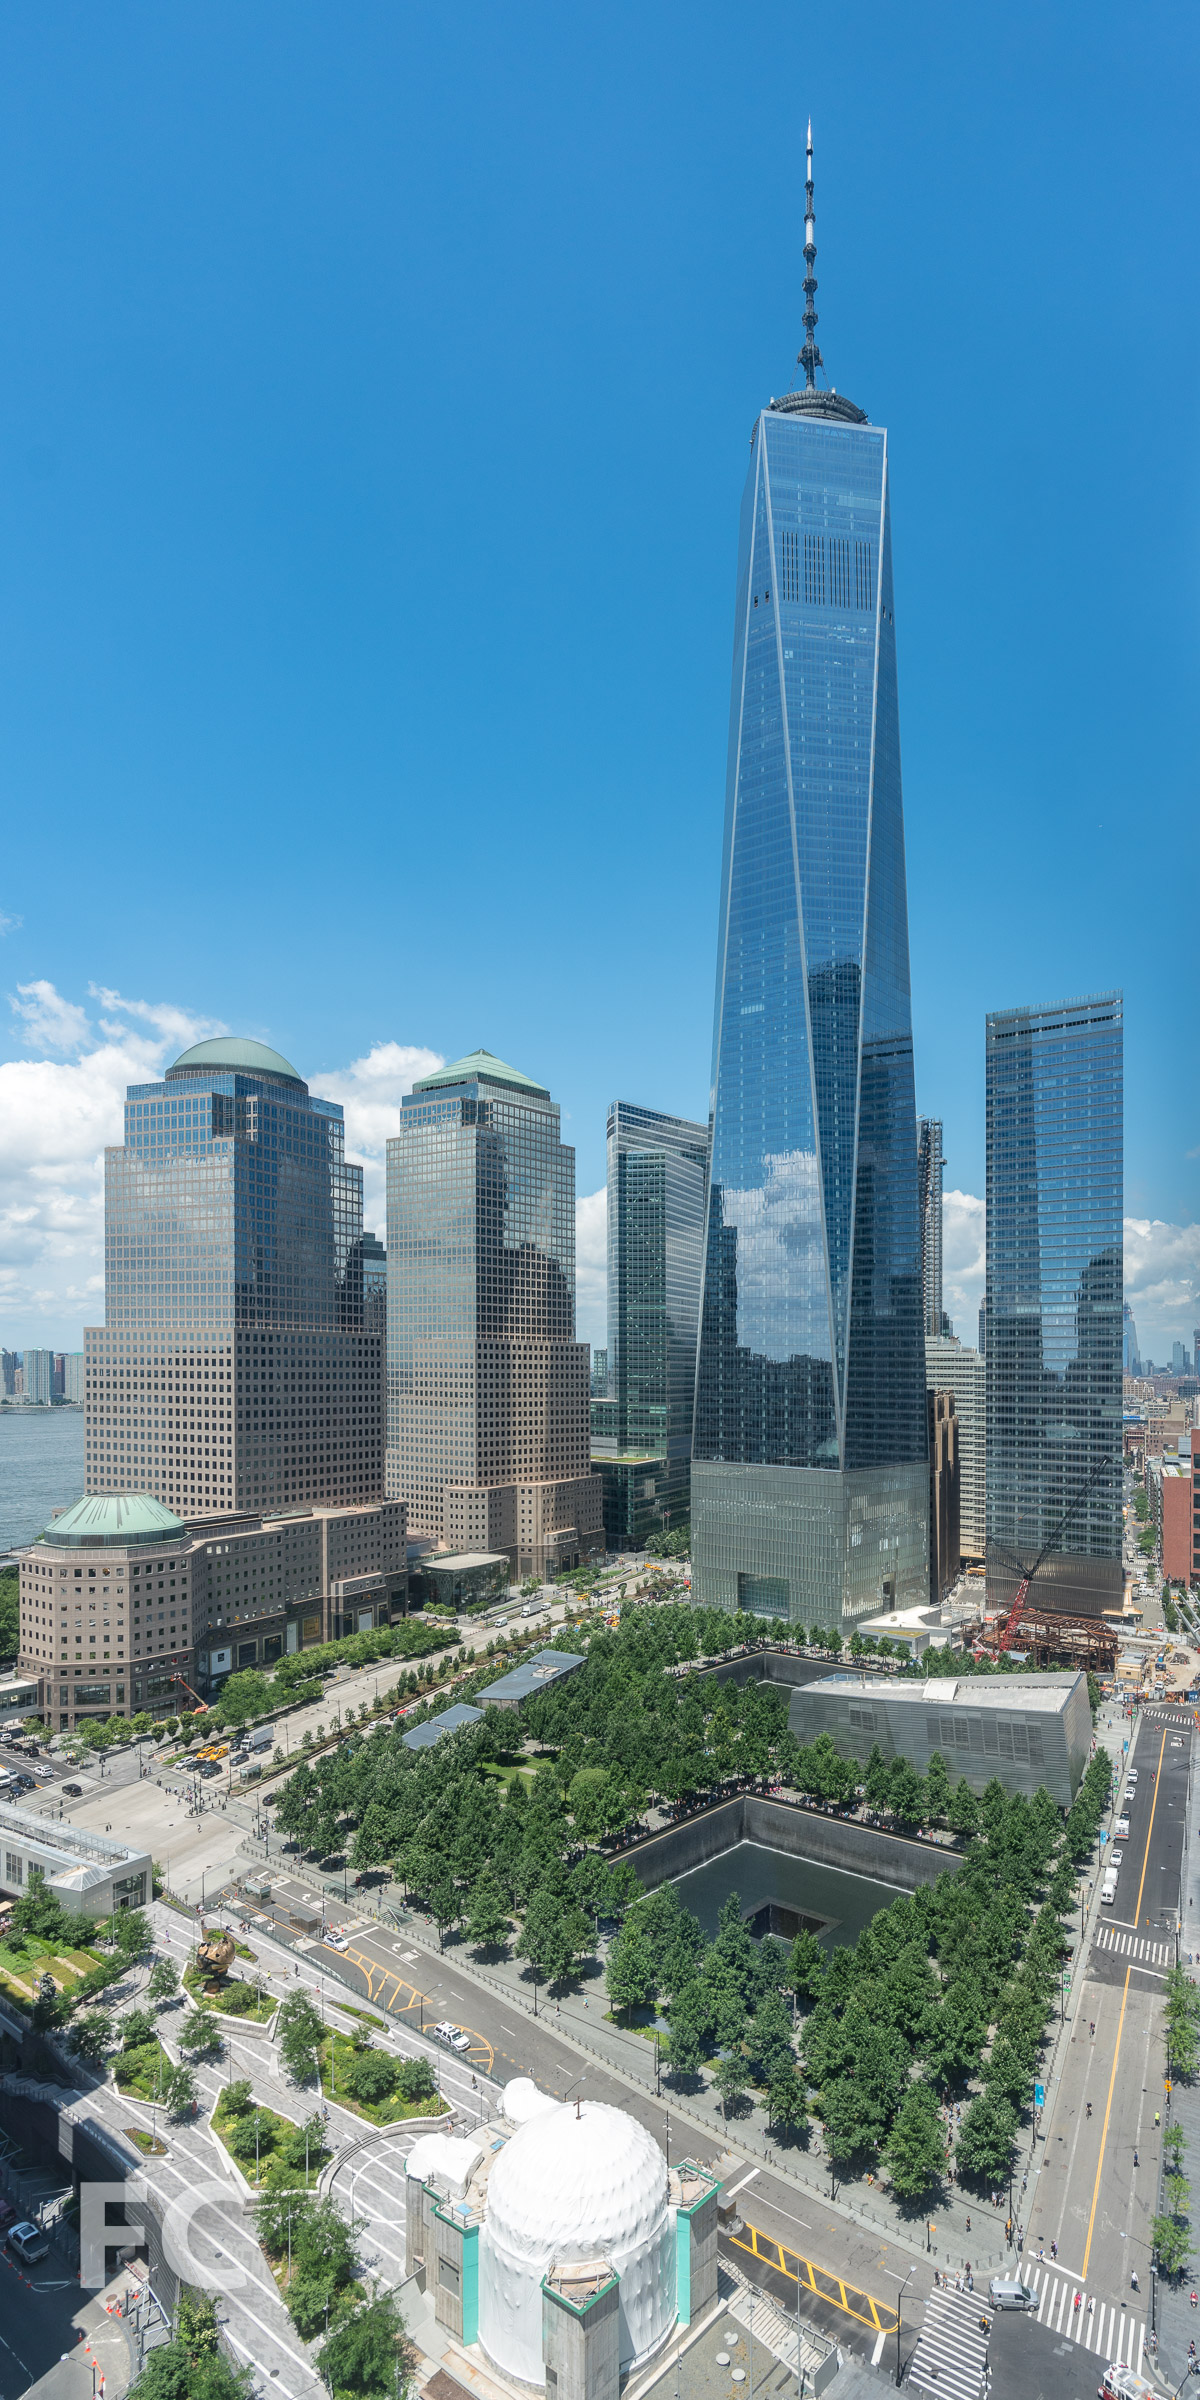 View of the World Trade Center site from the tower.